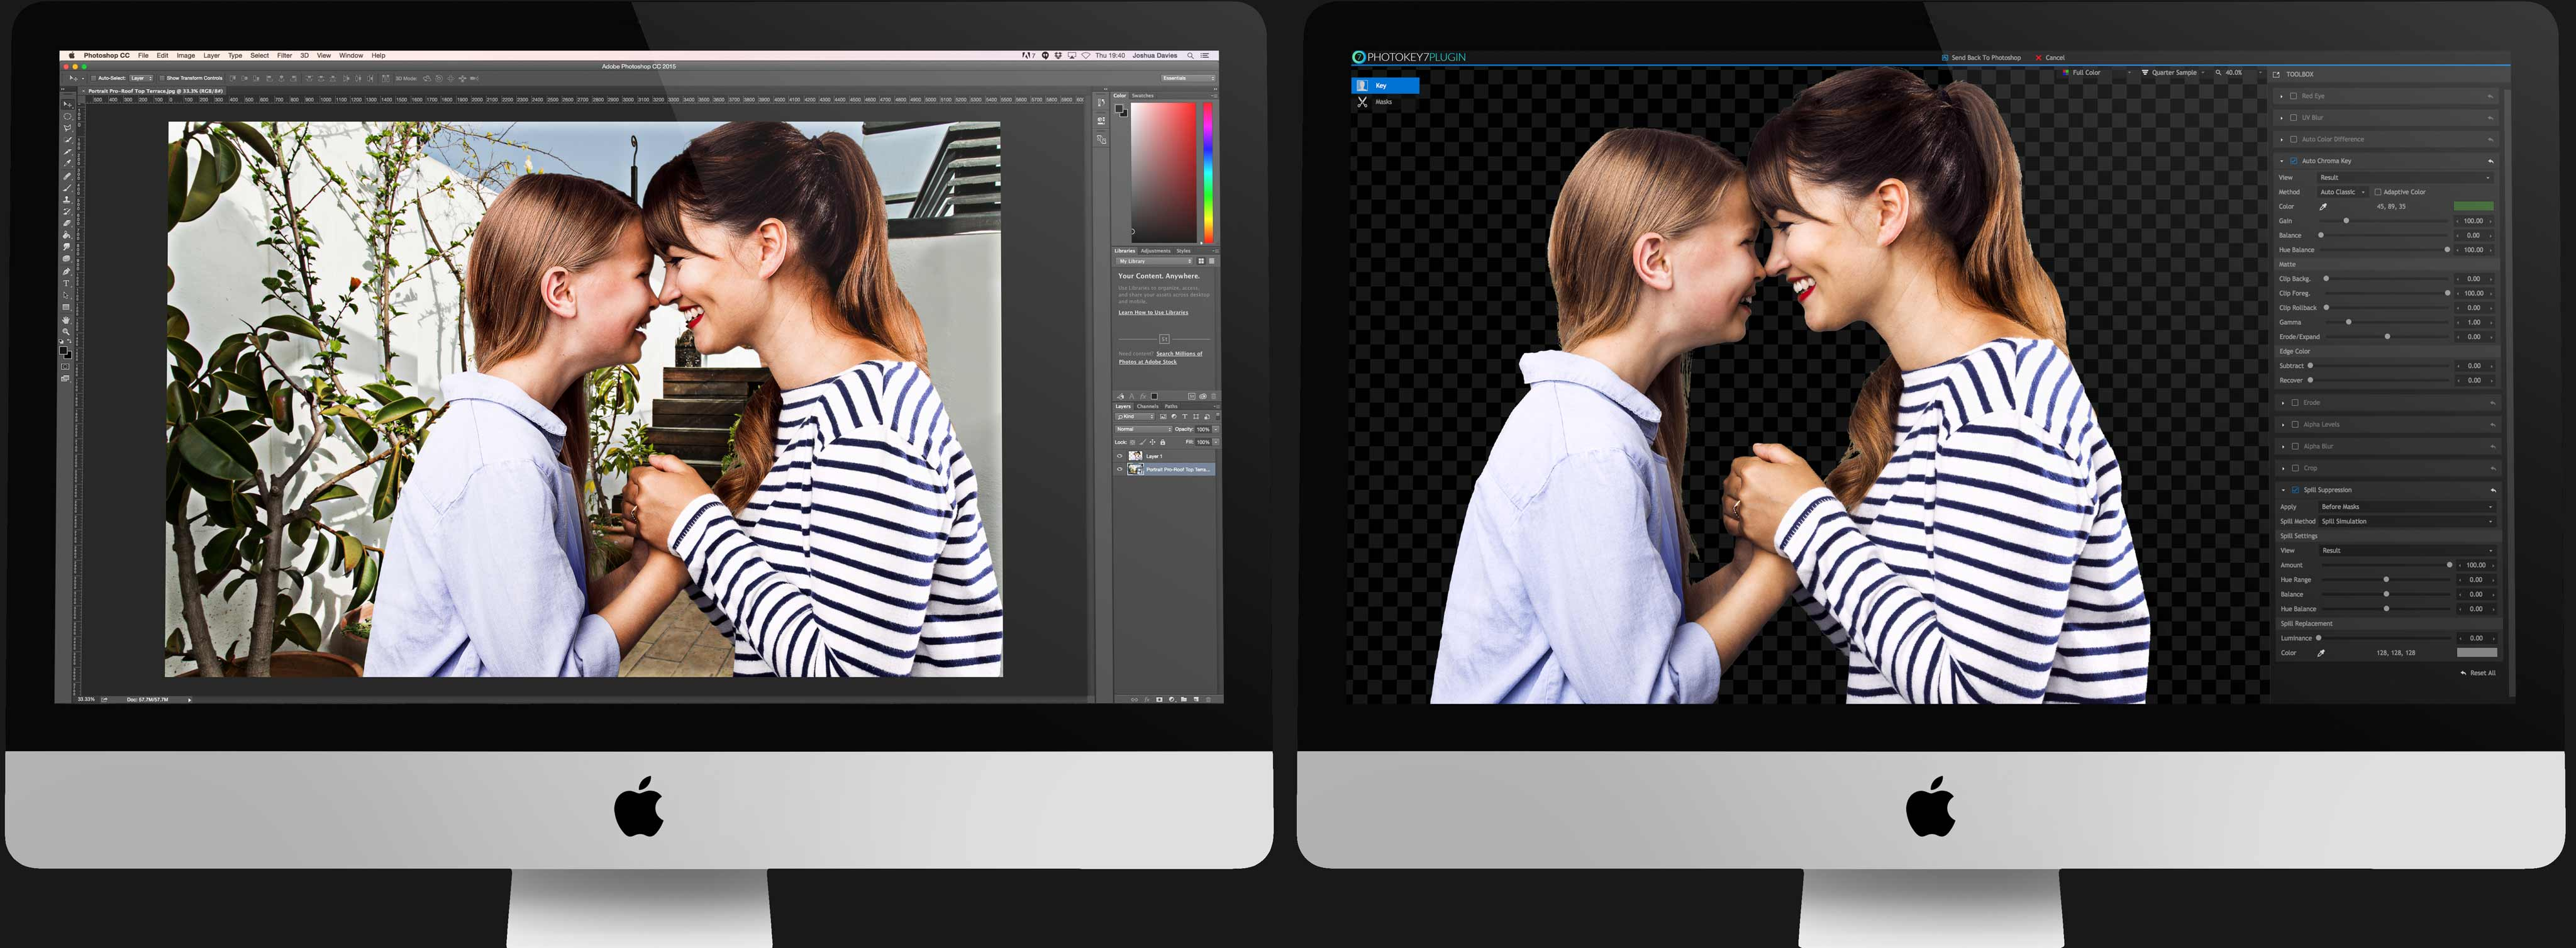 Terrific Adobe Photoshop Working Side Fx Home Photokey Pro Software Delivery Chroma Key Photoshop Plugin Free Chroma Key Photoshop Action Photokey Plugin dpreview Chroma Key Photoshop